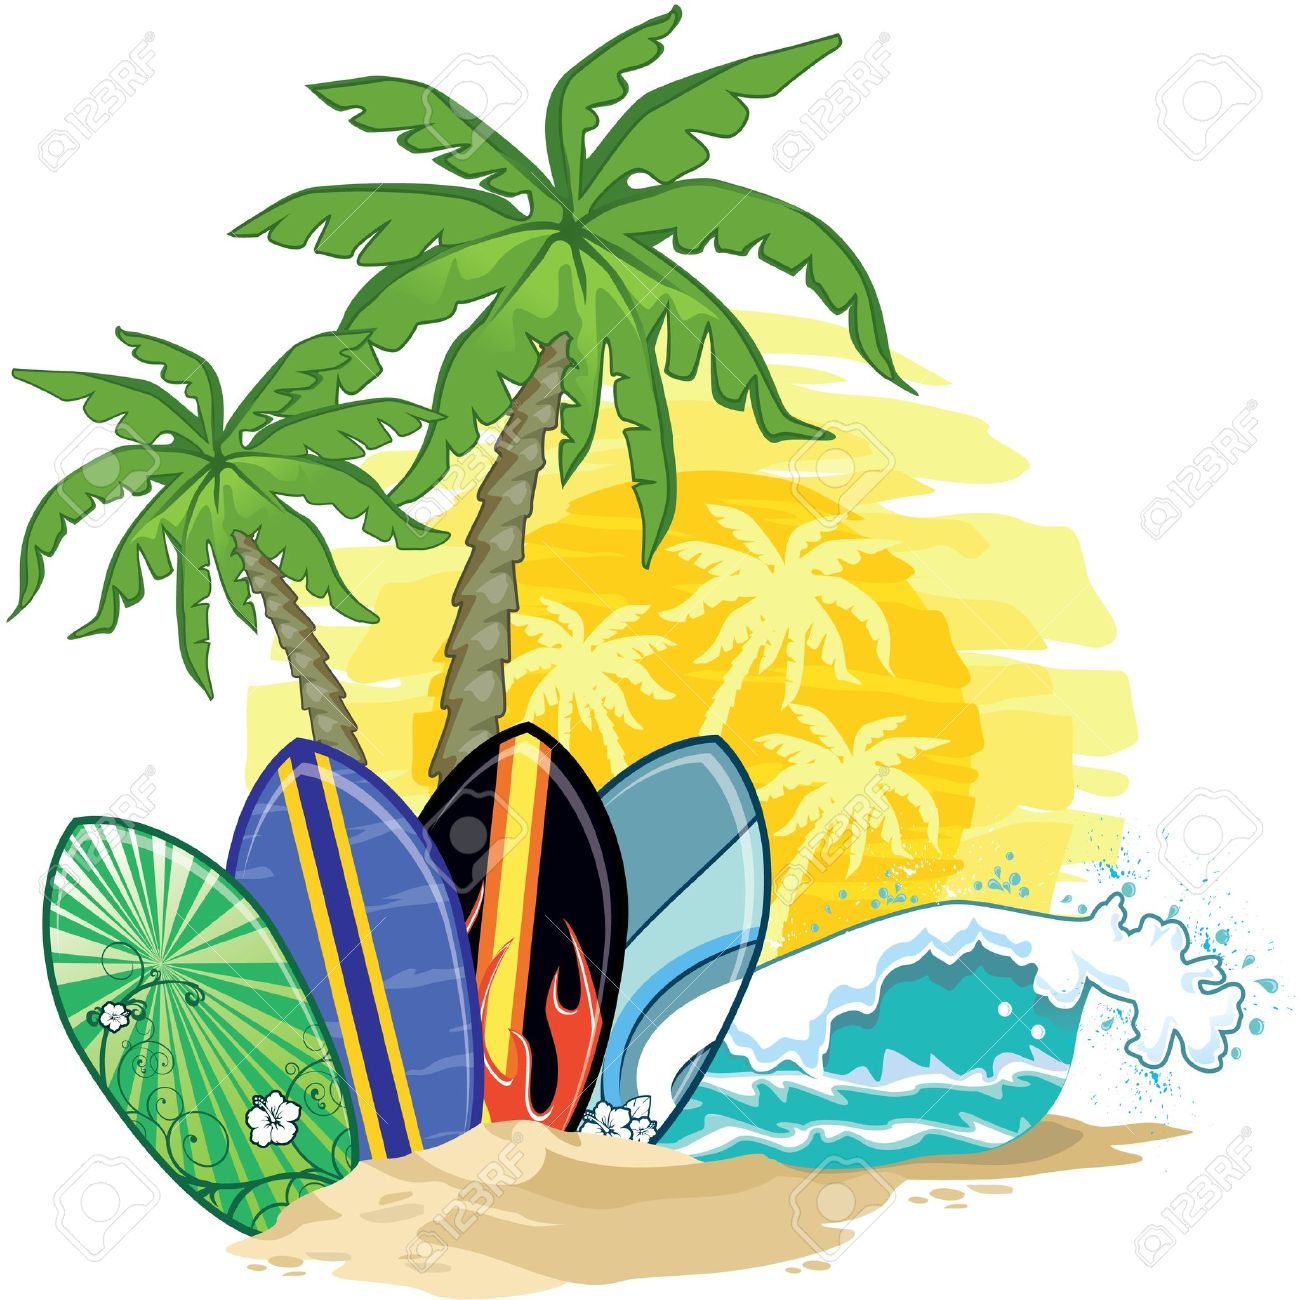 tropical landscape, palm trees and surfboards Stock Vector - 18856928